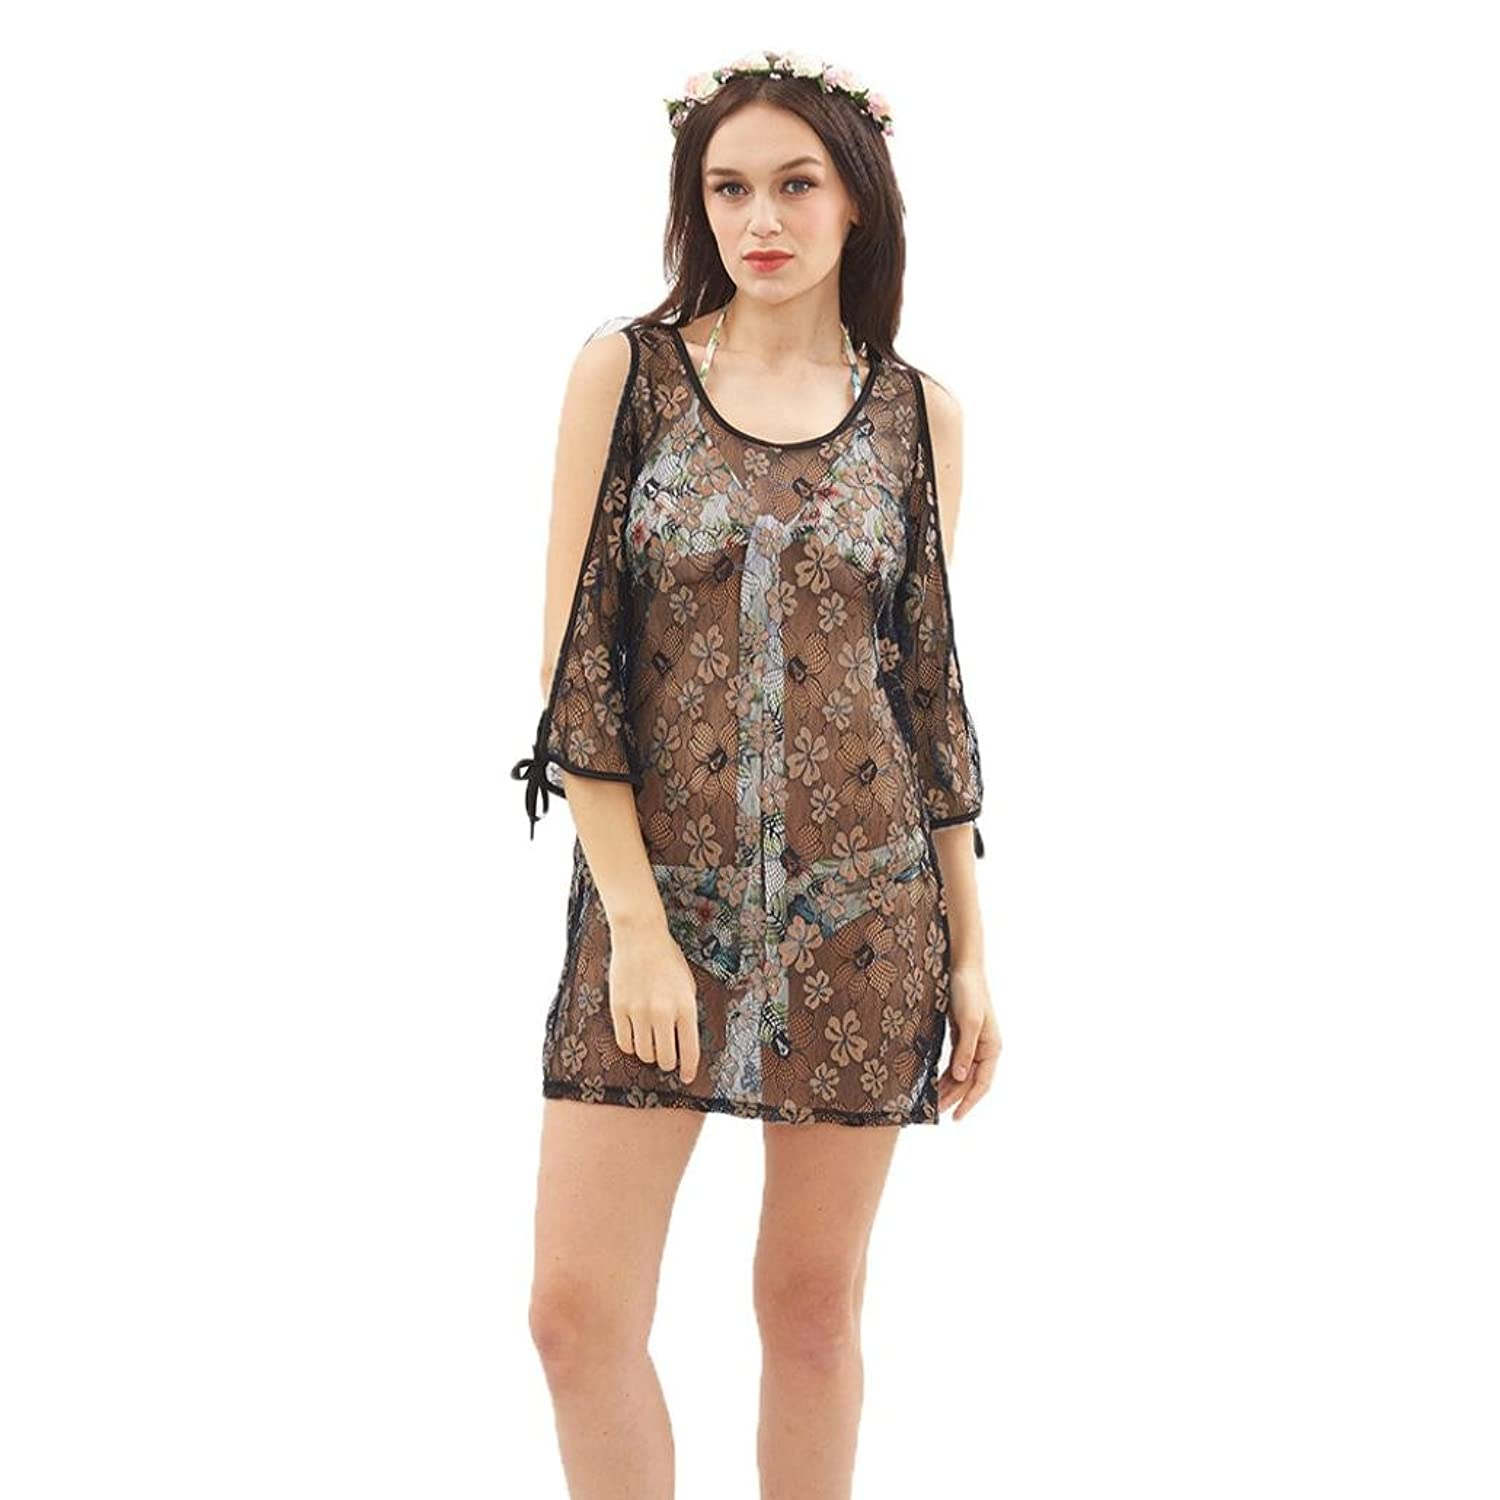 f0e390c5bcfc ☂☂Season:Summer,Spring-----It is made of high quality materials,durable  enought for your daily wearing☂☂(bikini cover up skirt bikini cover up skirt  ...